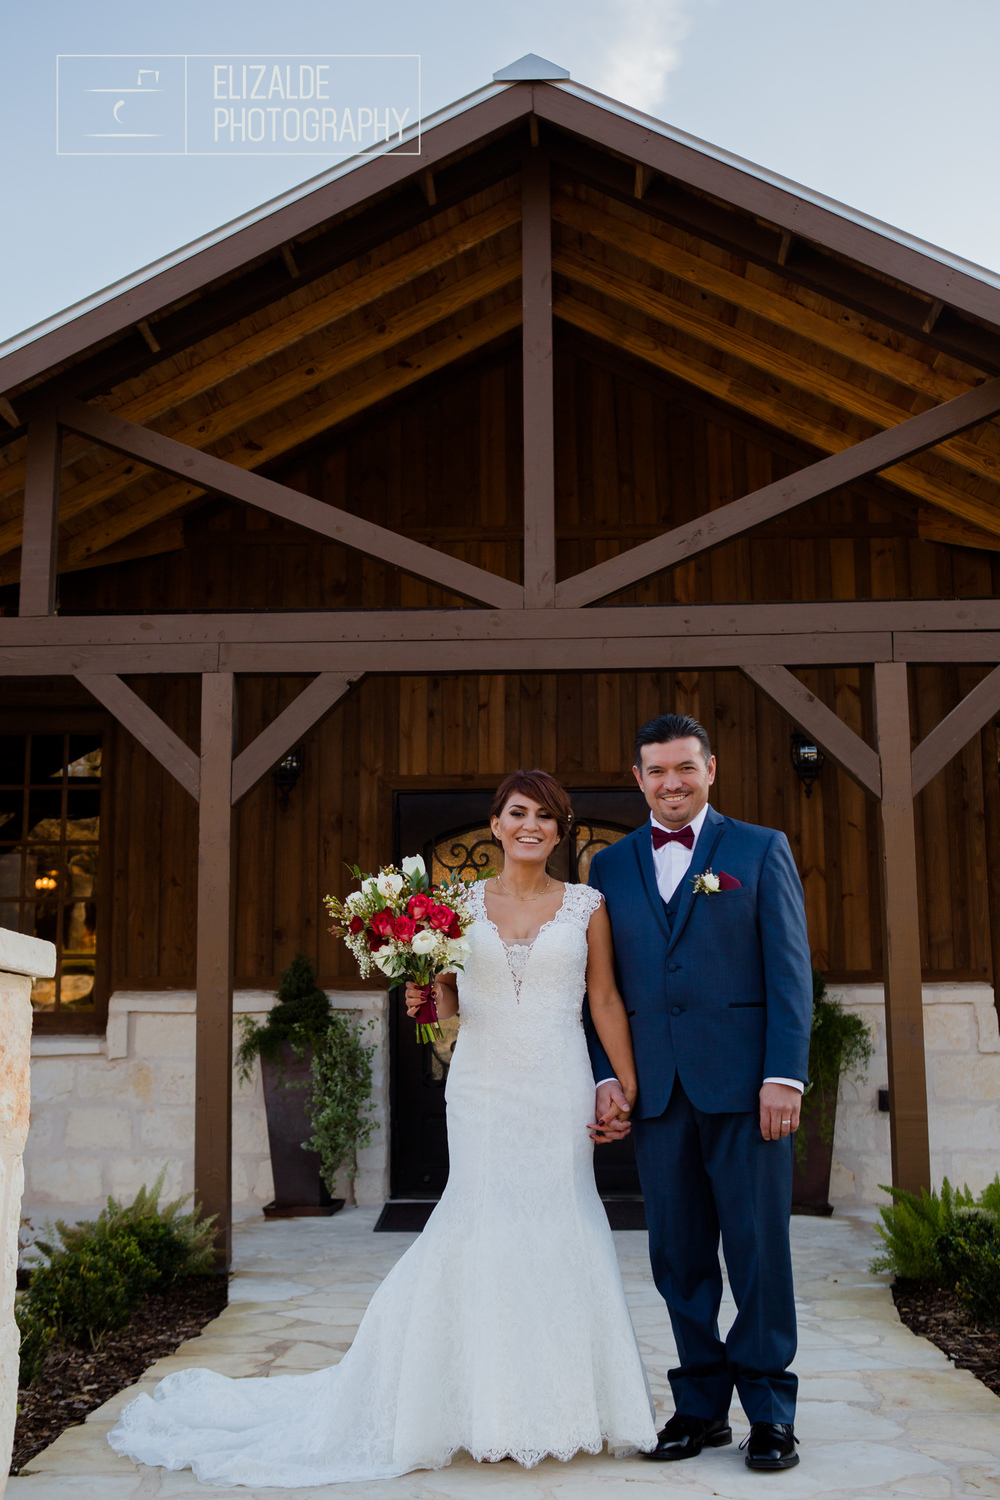 Lucia and Ernesto_Blog_Wedding_The Springs Denton-48.jpg